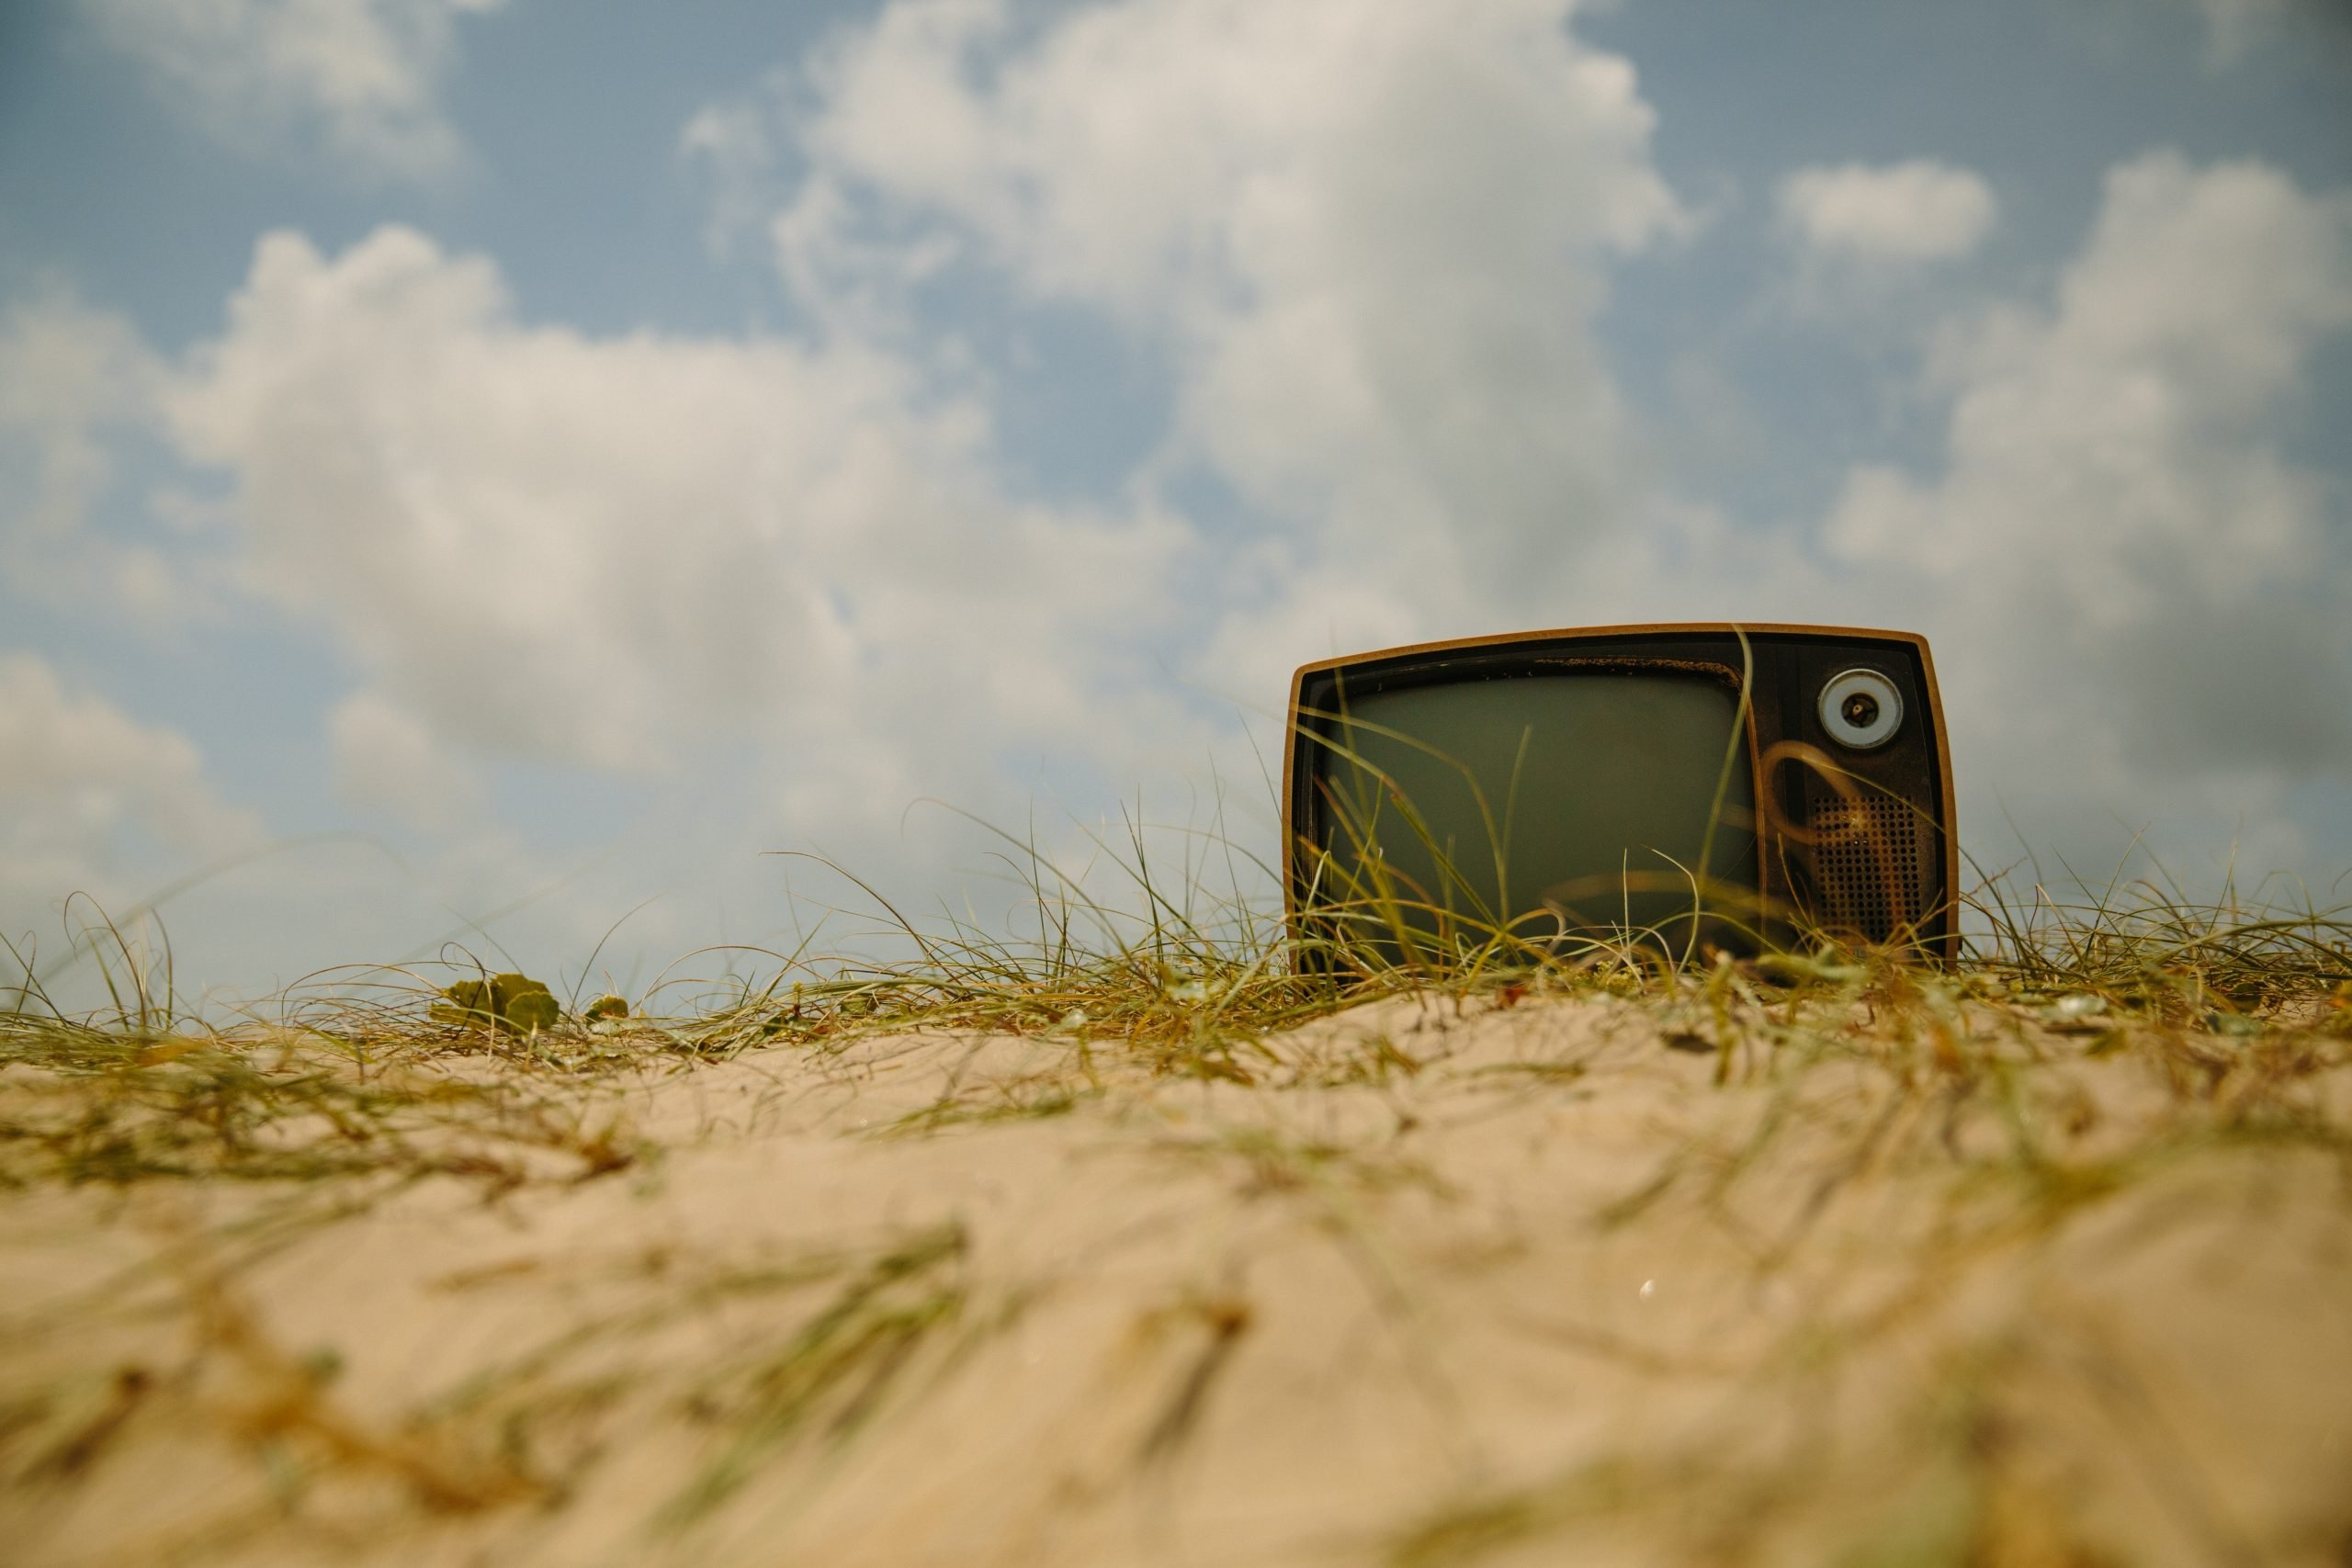 This is a picture of am old tired television on a beach for a case study called Consumer electronics Competitor Analysis case study showed how they were getting beaten by Octopus is a Competitive Intelligence Competitor Analysis focused on creating certainty